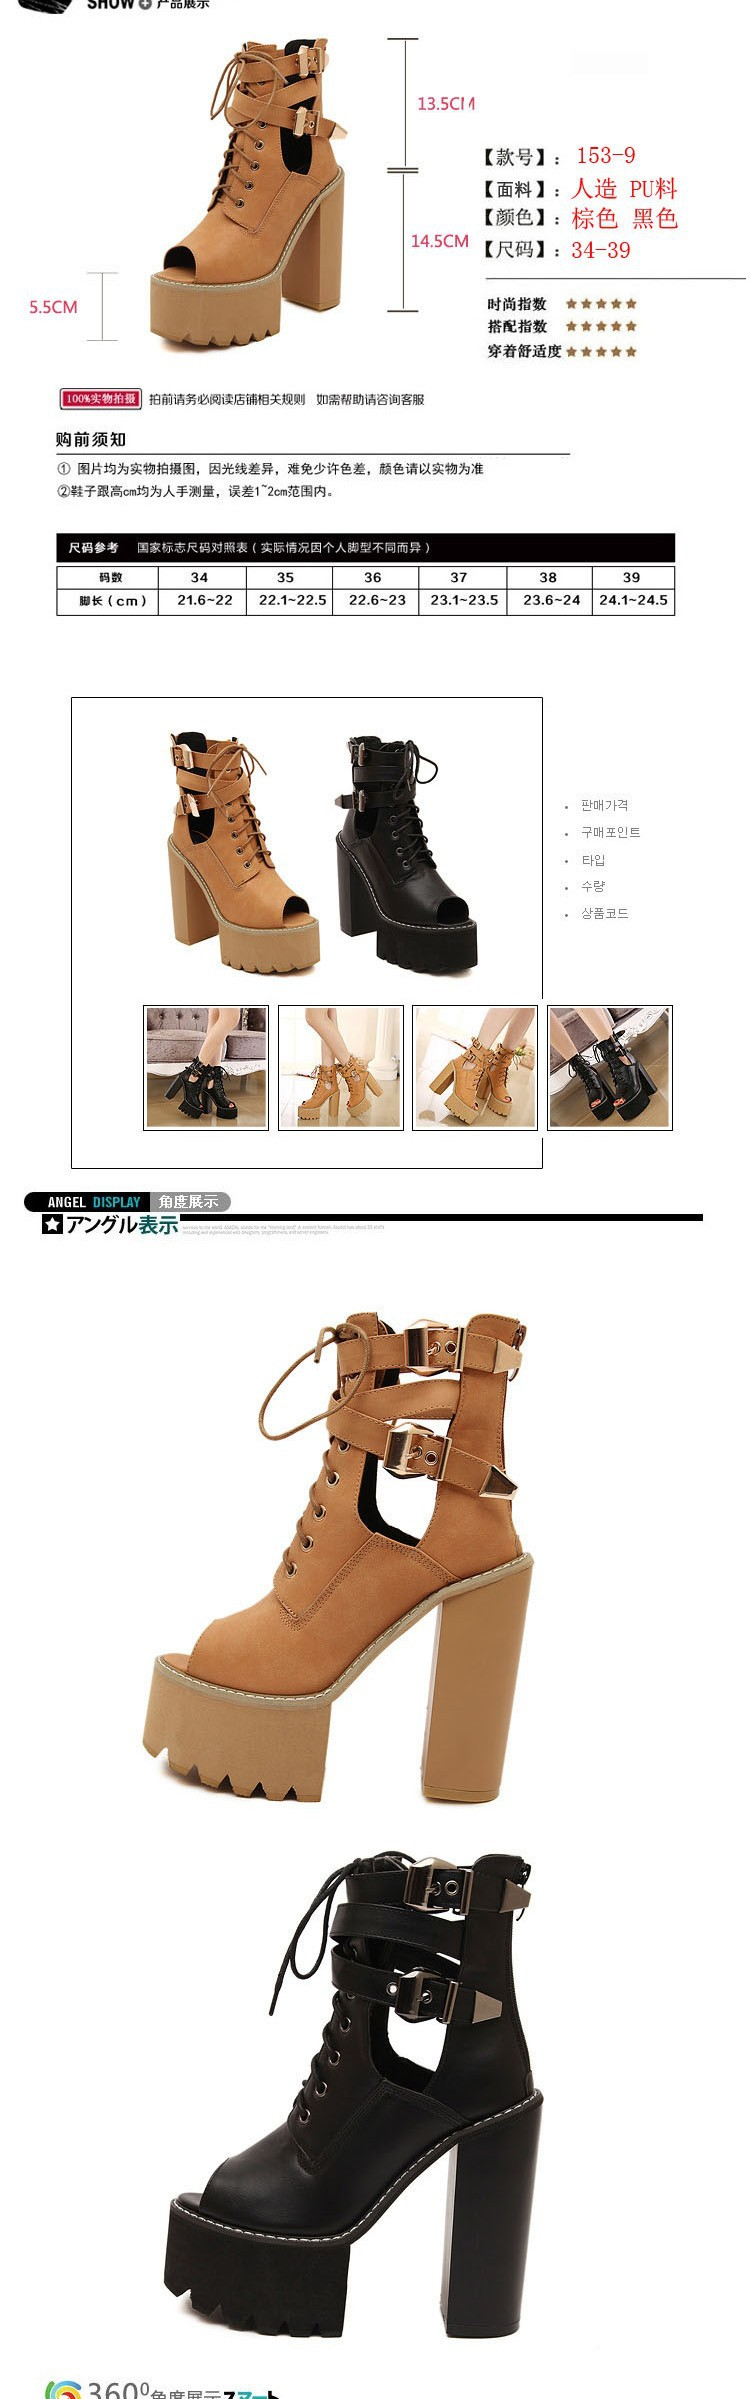 Women Summer Boots 2015 Ladies High Heel Boots Open Toe Ankle Boots